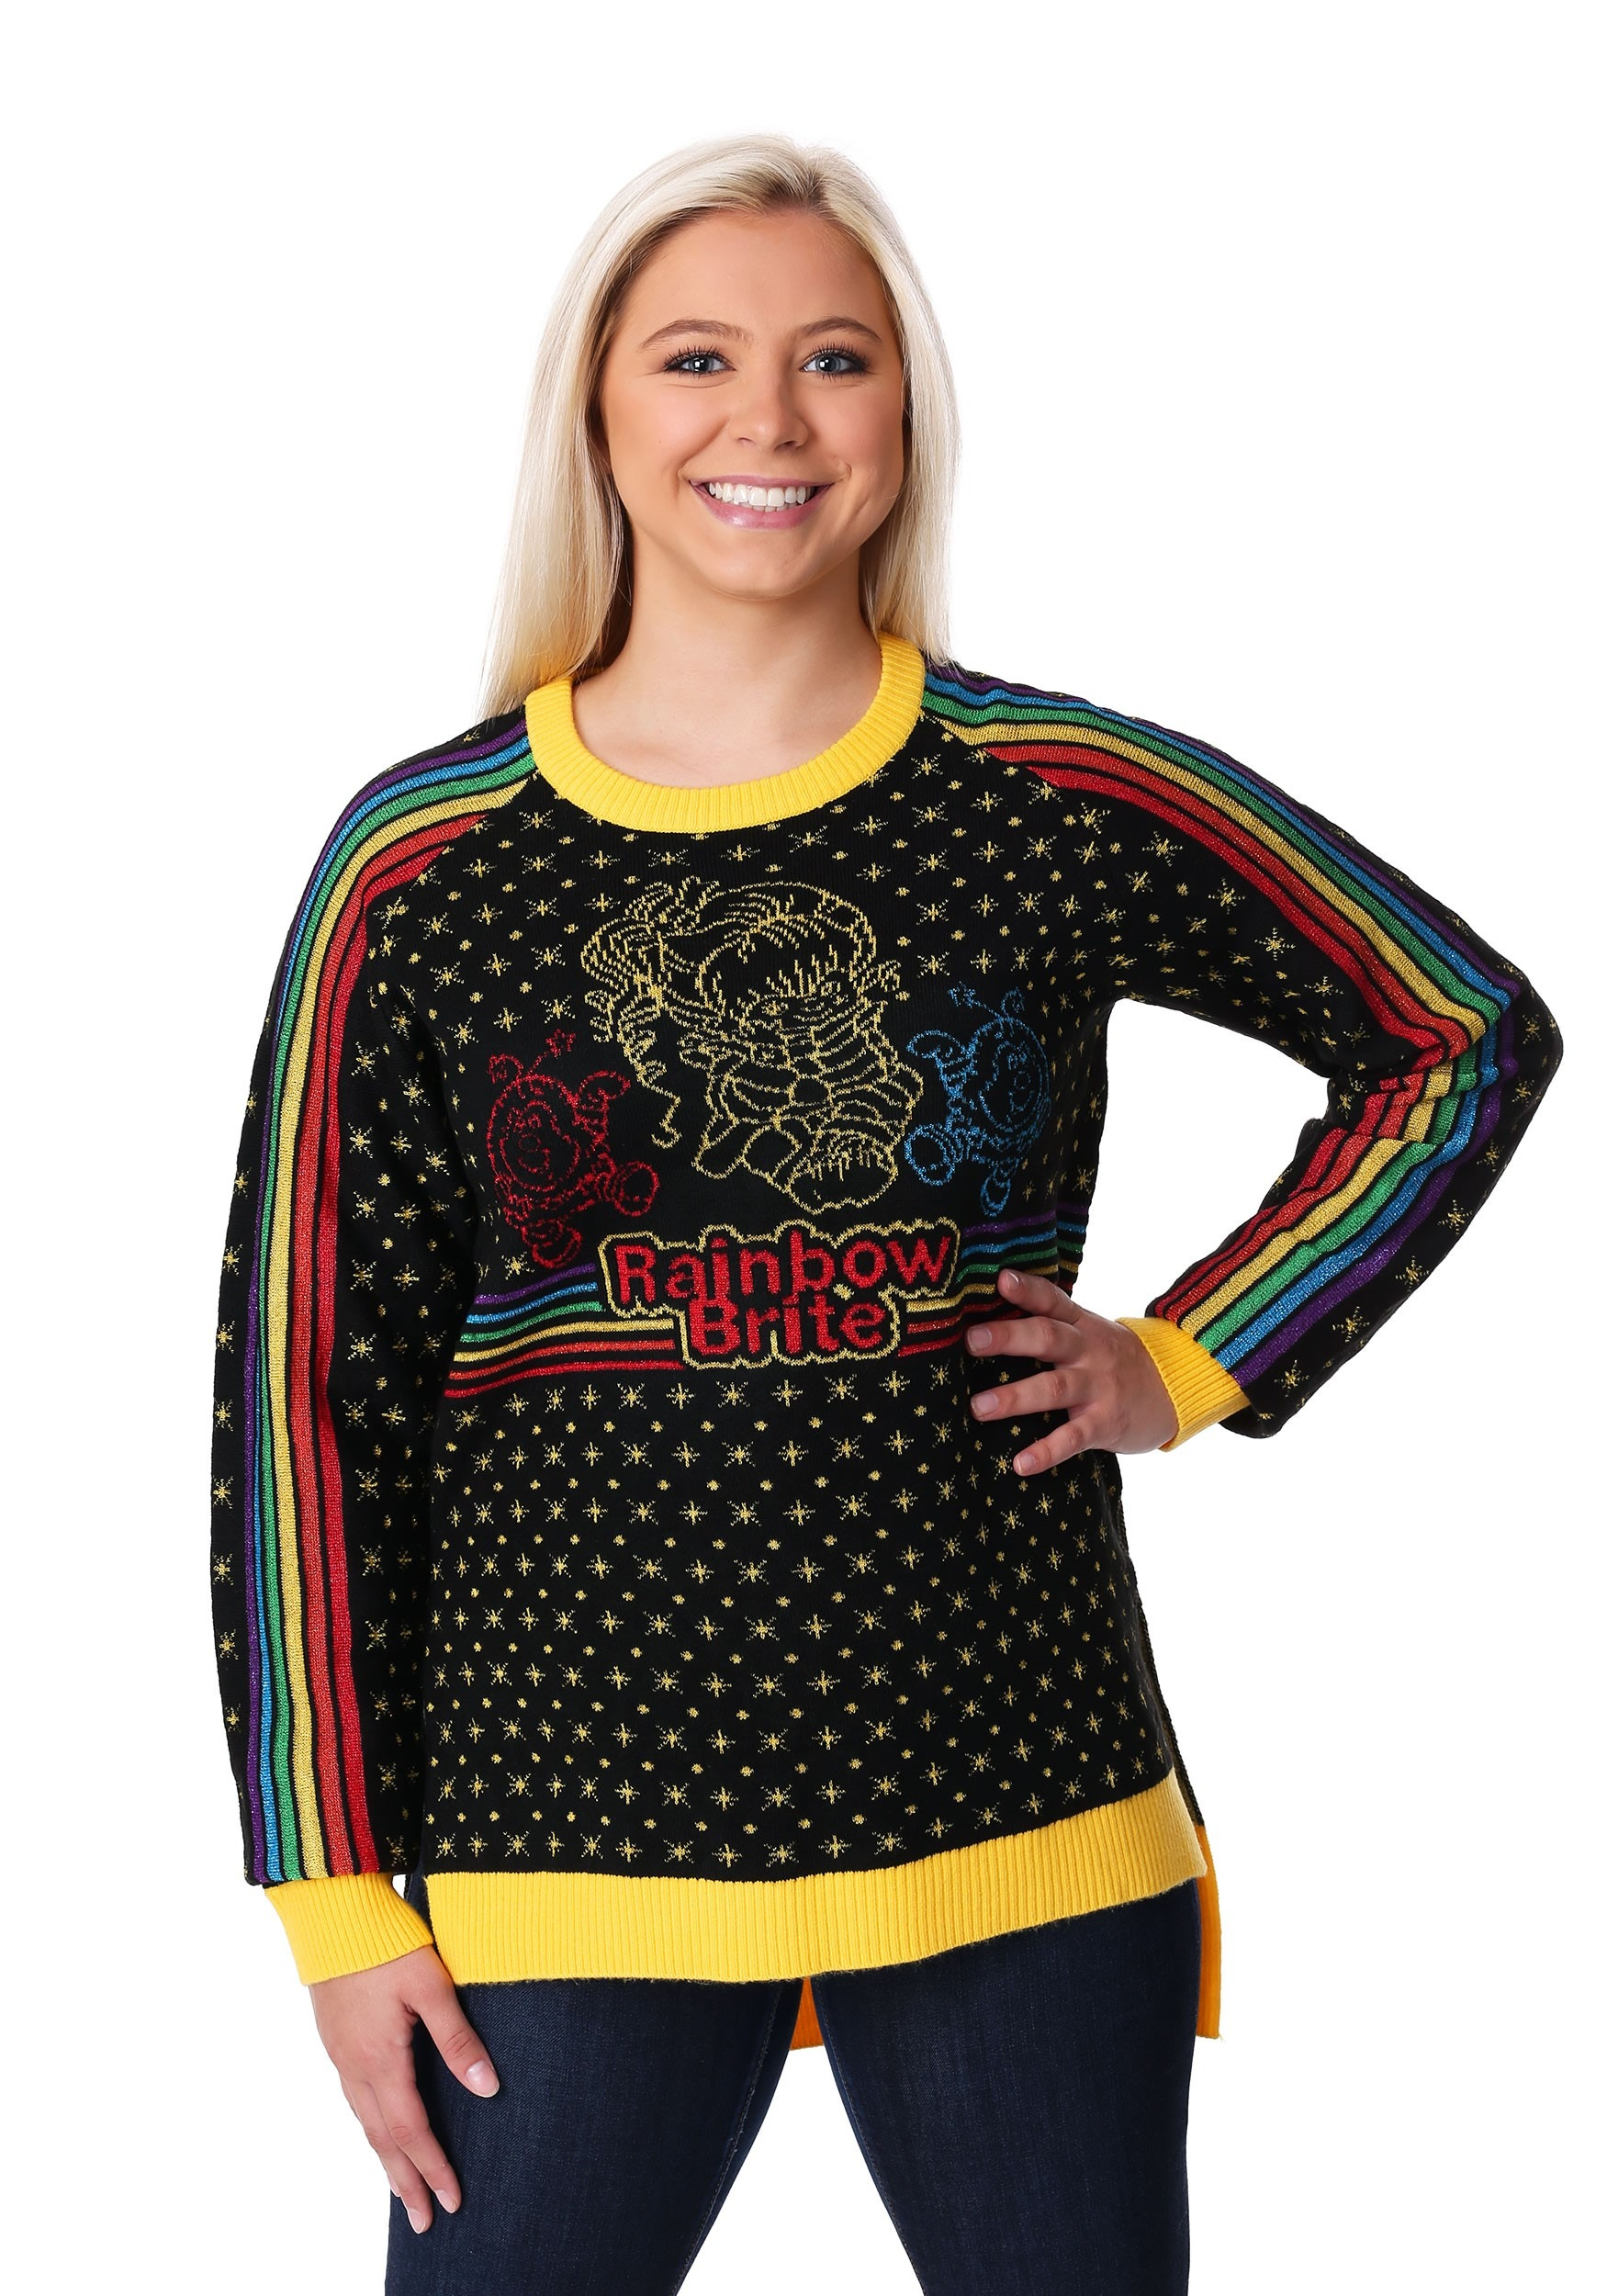 Hi Lo Rainbow Brite Womens Ugly Christmas Sweater